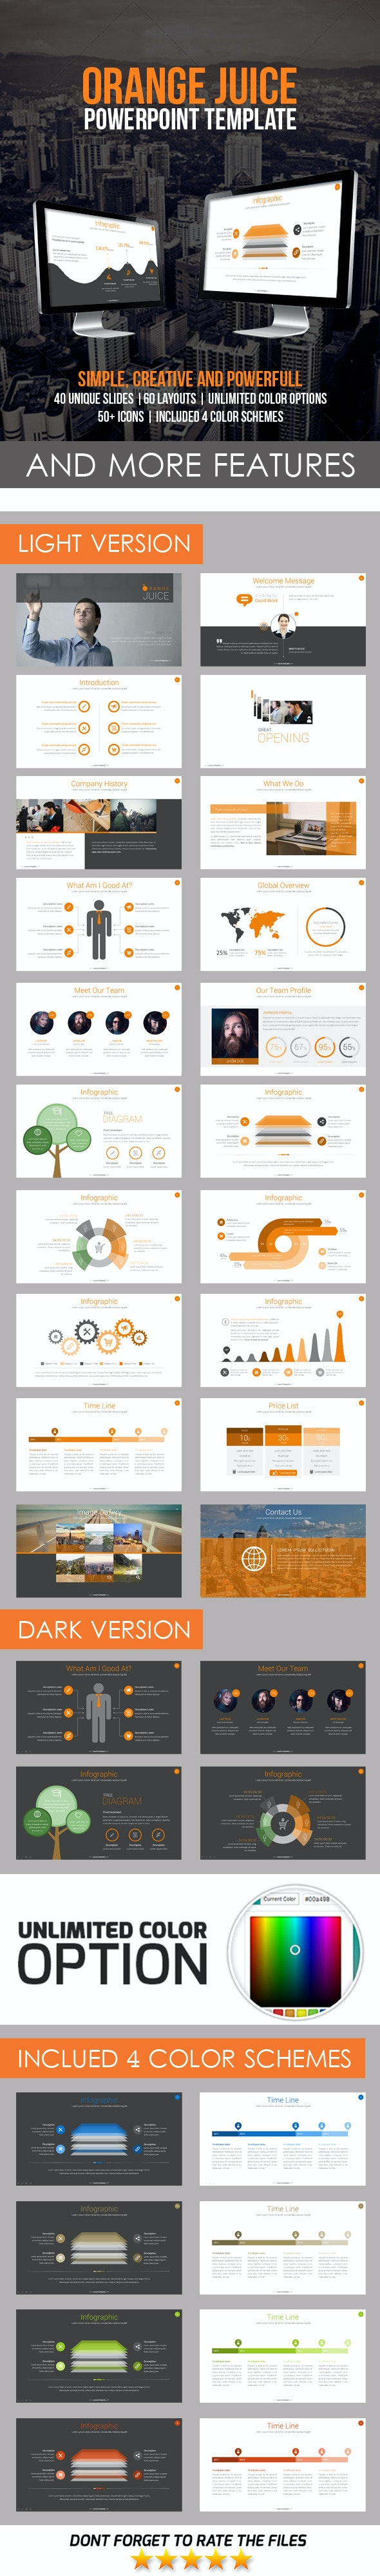 Orange Juice PowerPoint Template - Business PowerPoint Templates